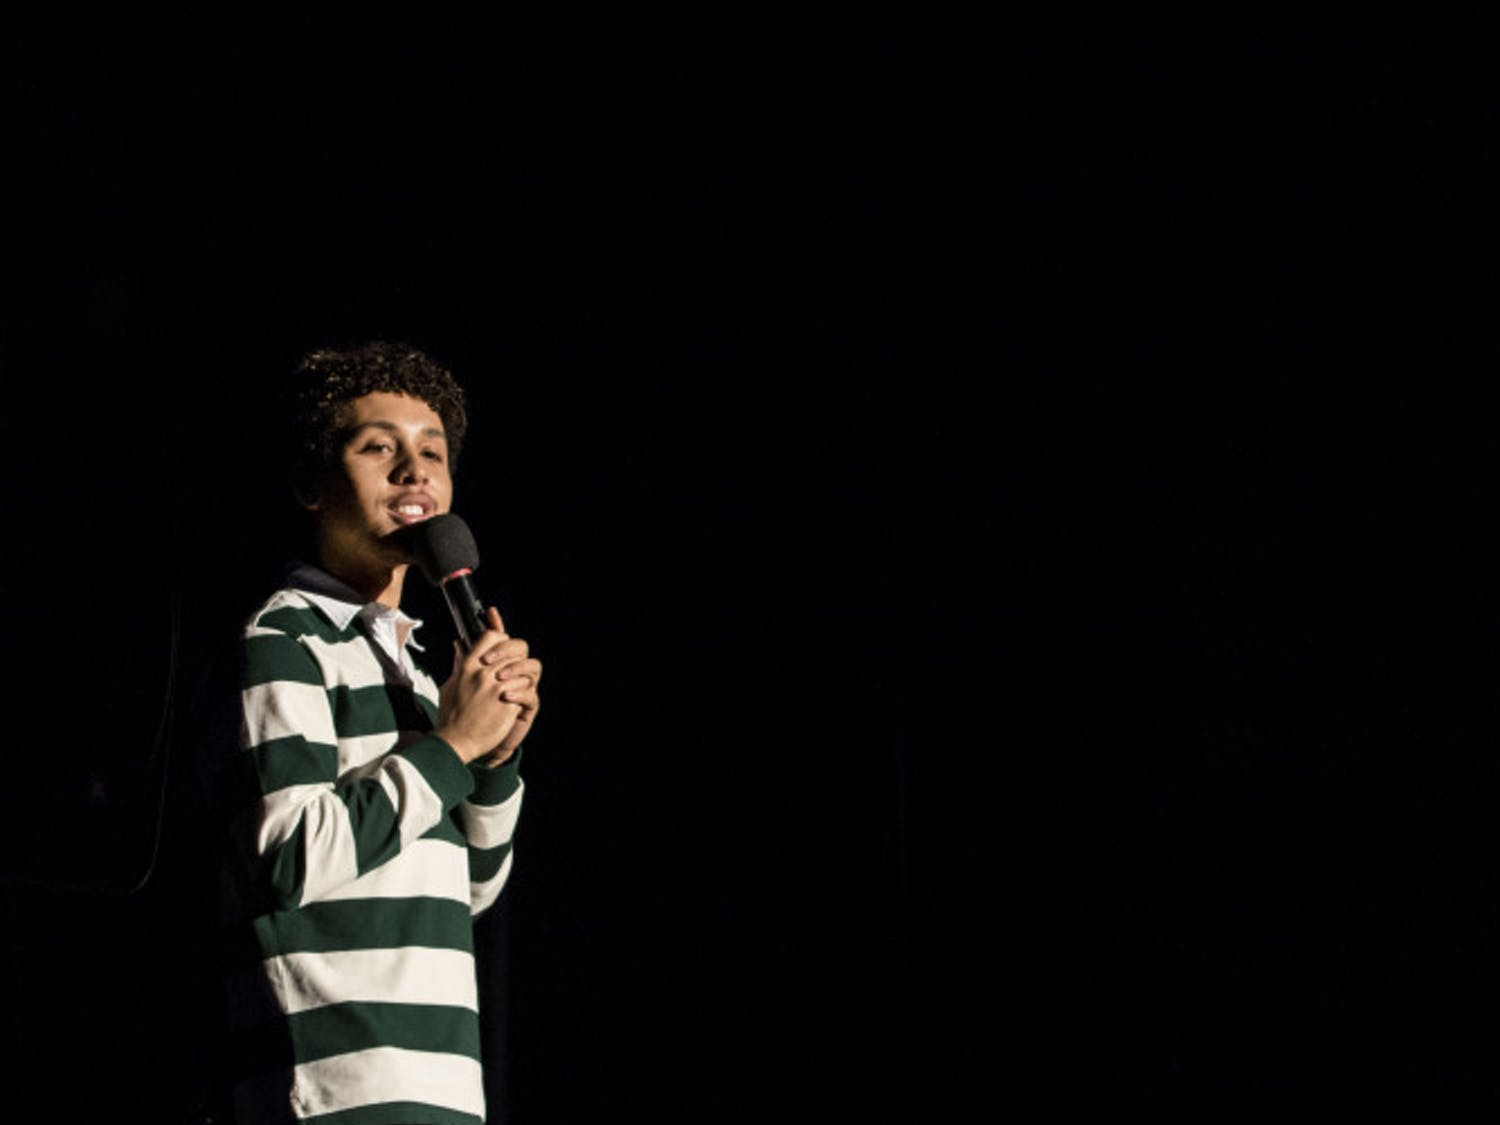 Comedian Jaboukie Young-White performs in the Reitz Union Grand Ballroom to an audience of about 450 students Monday night. He cracked jokes about getting into college, having his phone stolen and gay insects.